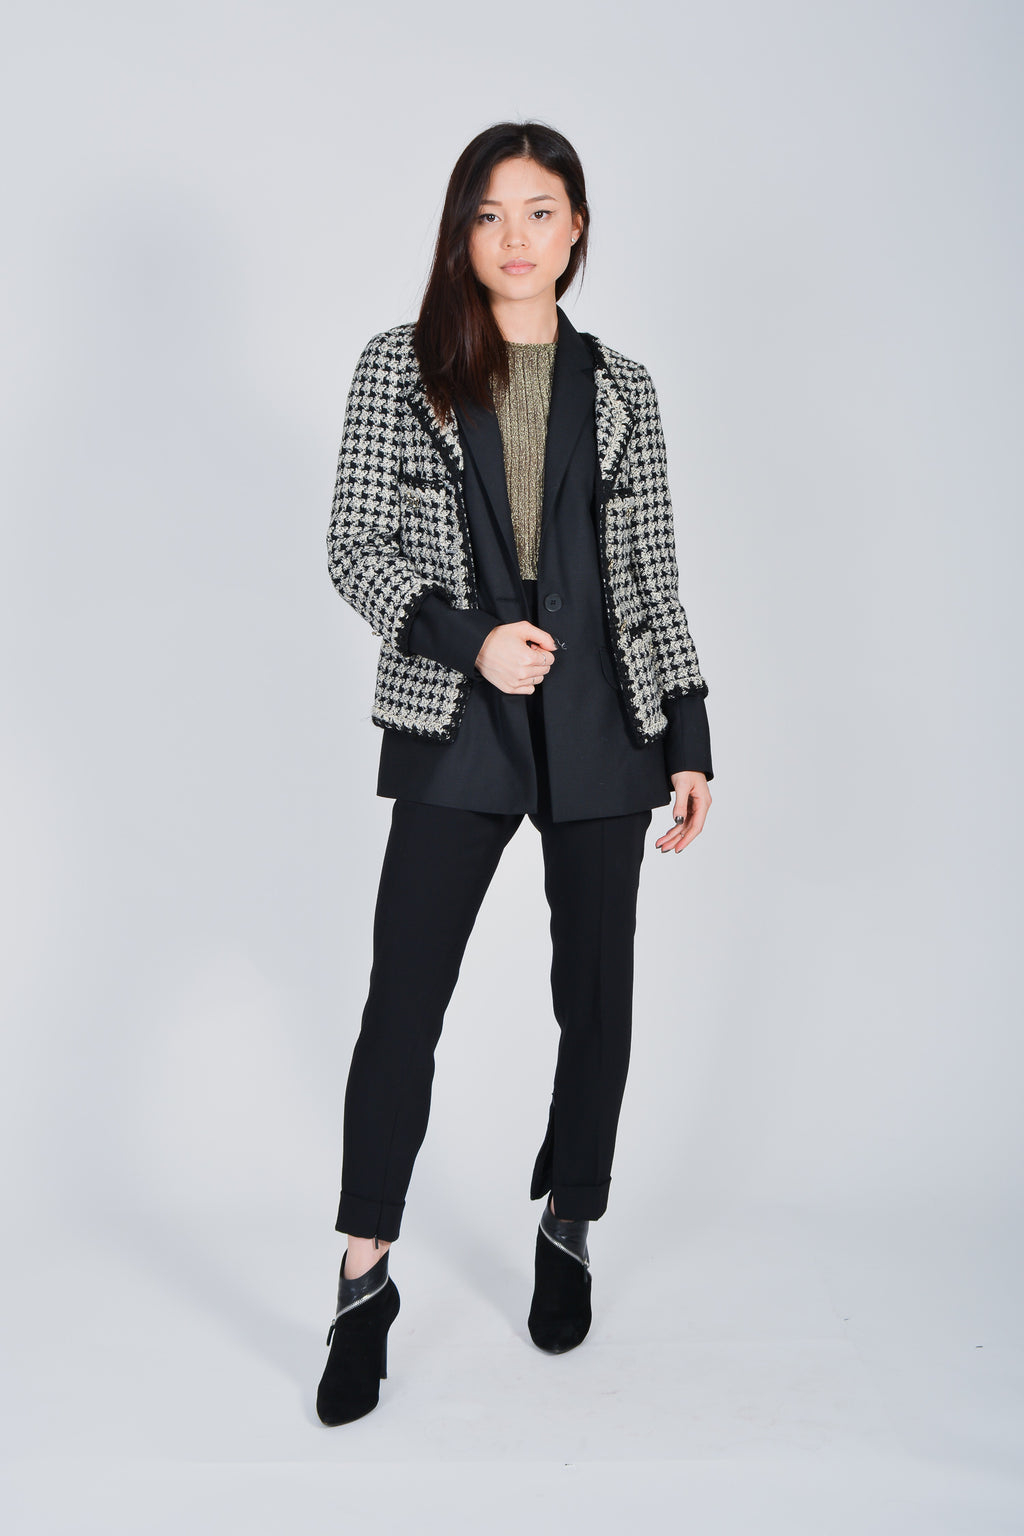 Chanel Tweed Wool/Cashmere Overlay Blazer with Black Wool/Mohair Blazer Size 38